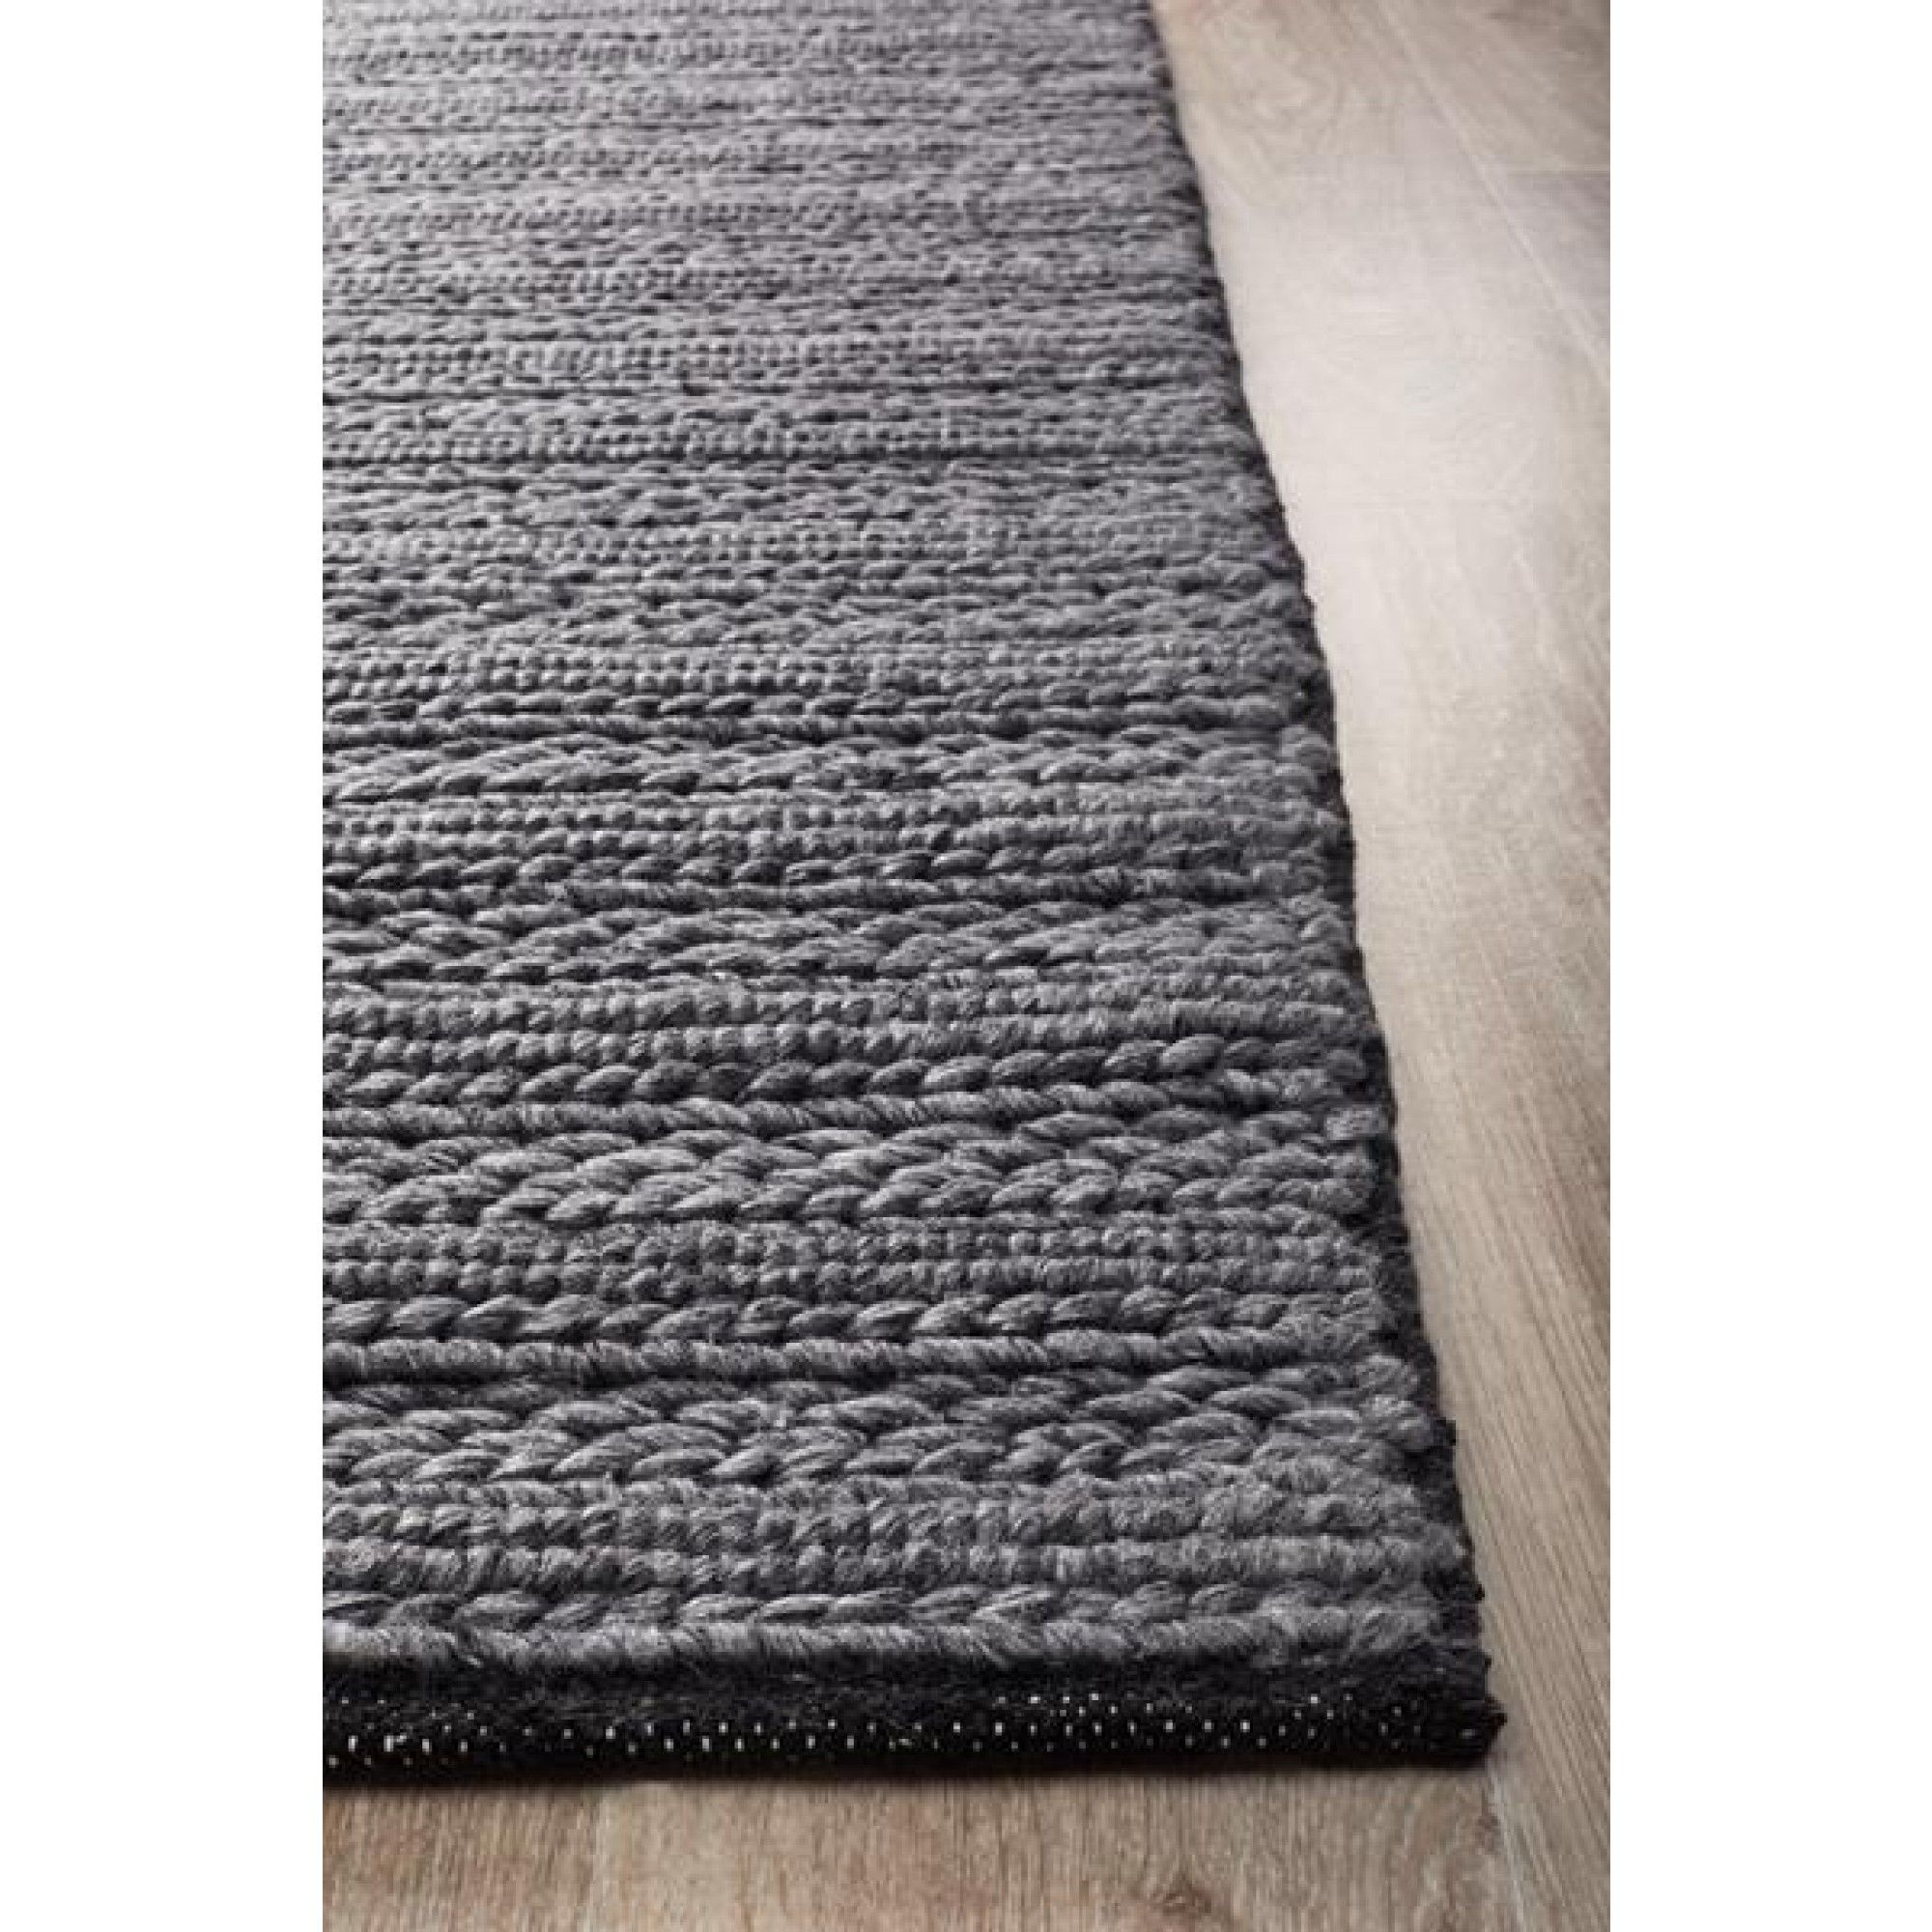 The Destiny Design Is A Wide Range Of Assorted Textured Hand Loomed Braided Flat Weave Rugs Made From India This Collection Of Floor Area Rugs Rugs Flatwoven